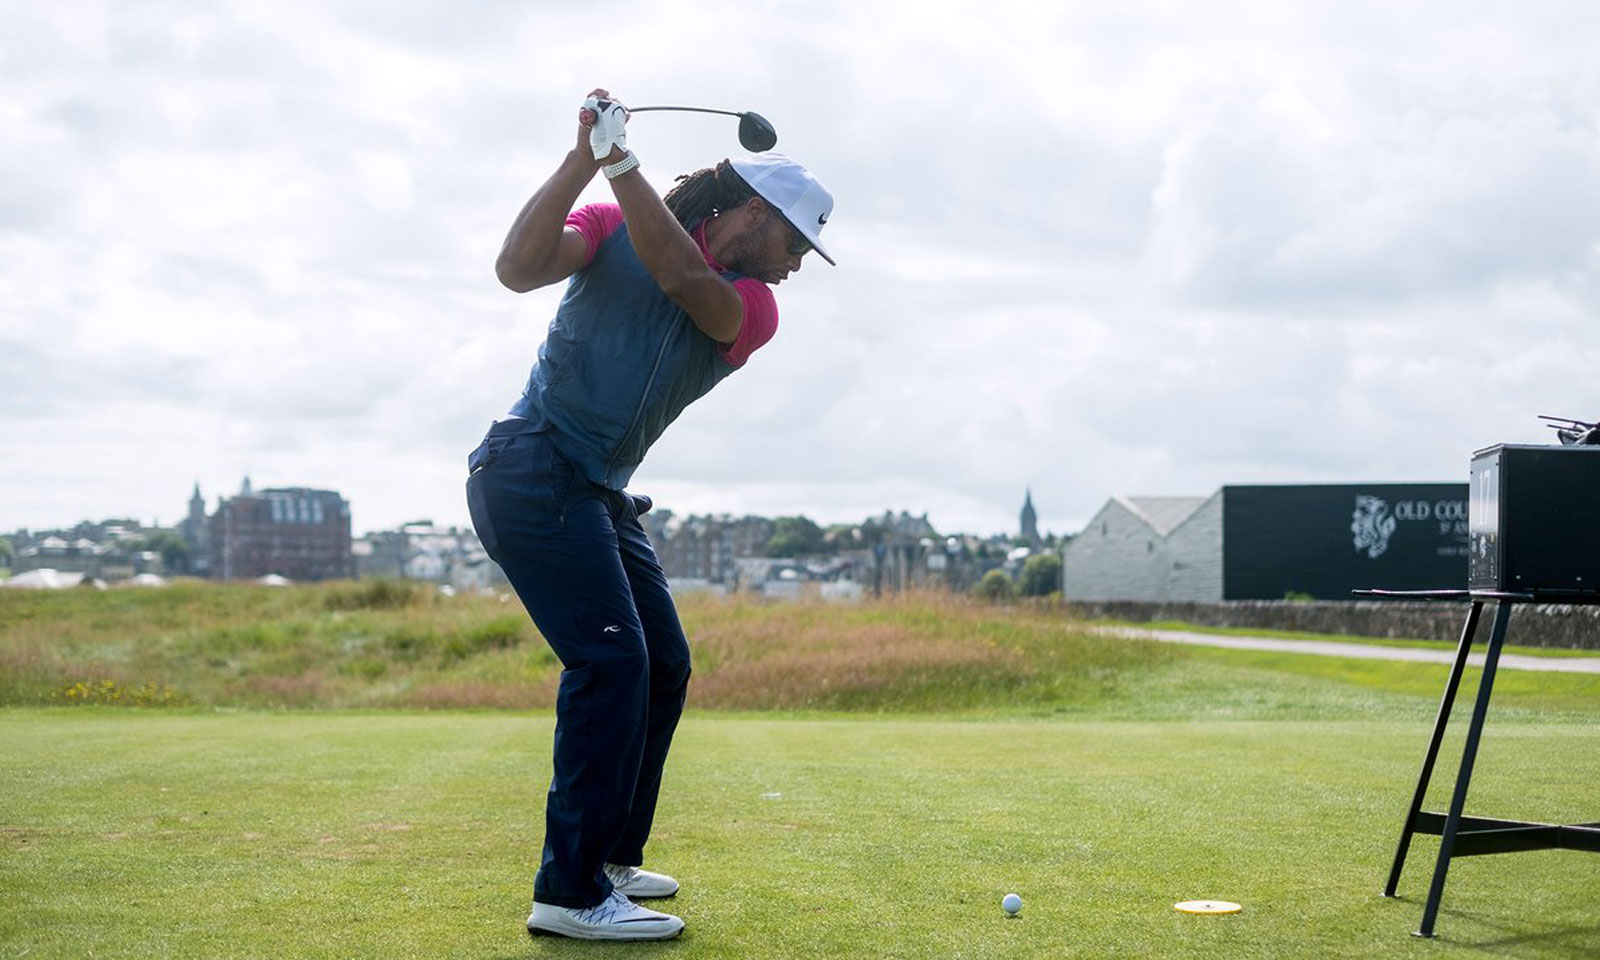 NFL Athlete Larry Fitzgerald golfing at St Andrews Links